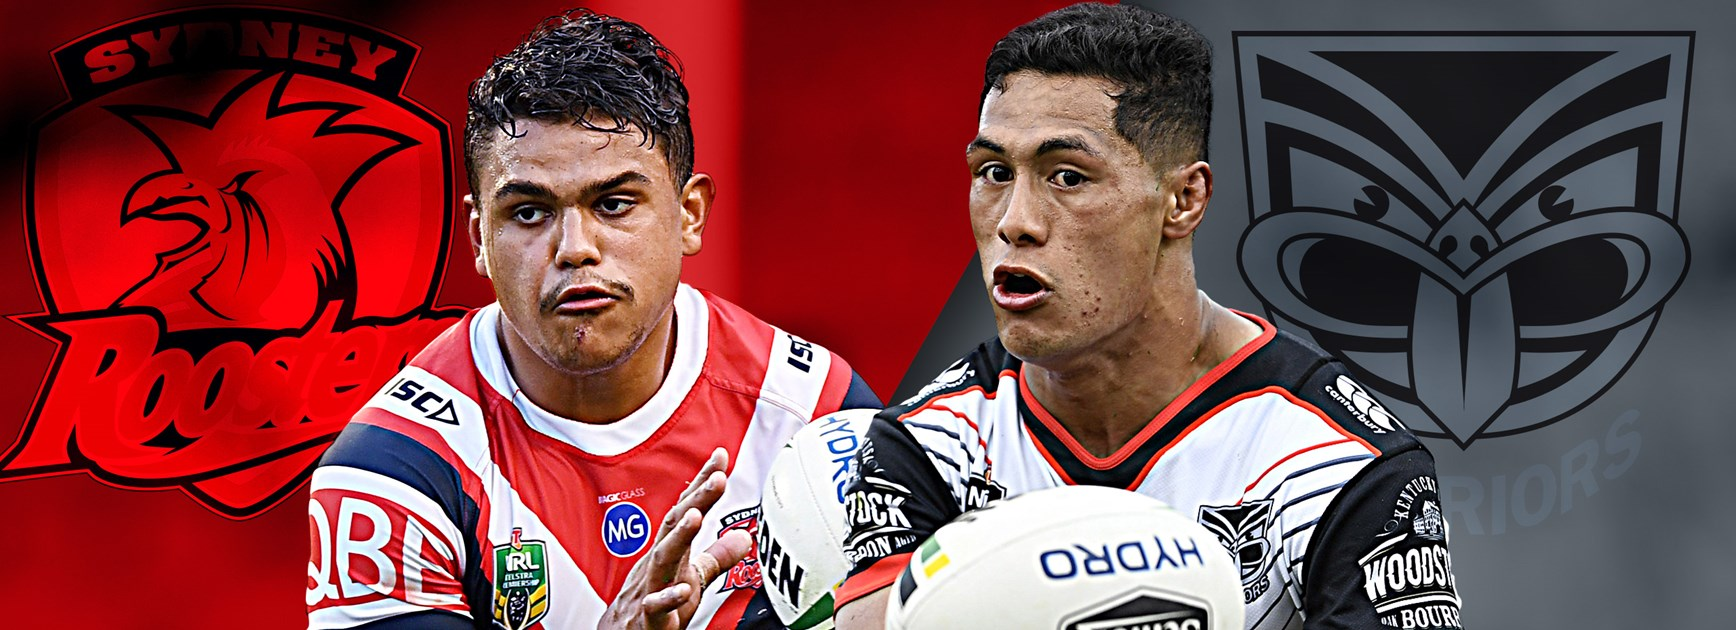 Roosters v Warriors: Roosters unchanged, Satae in for Warriors